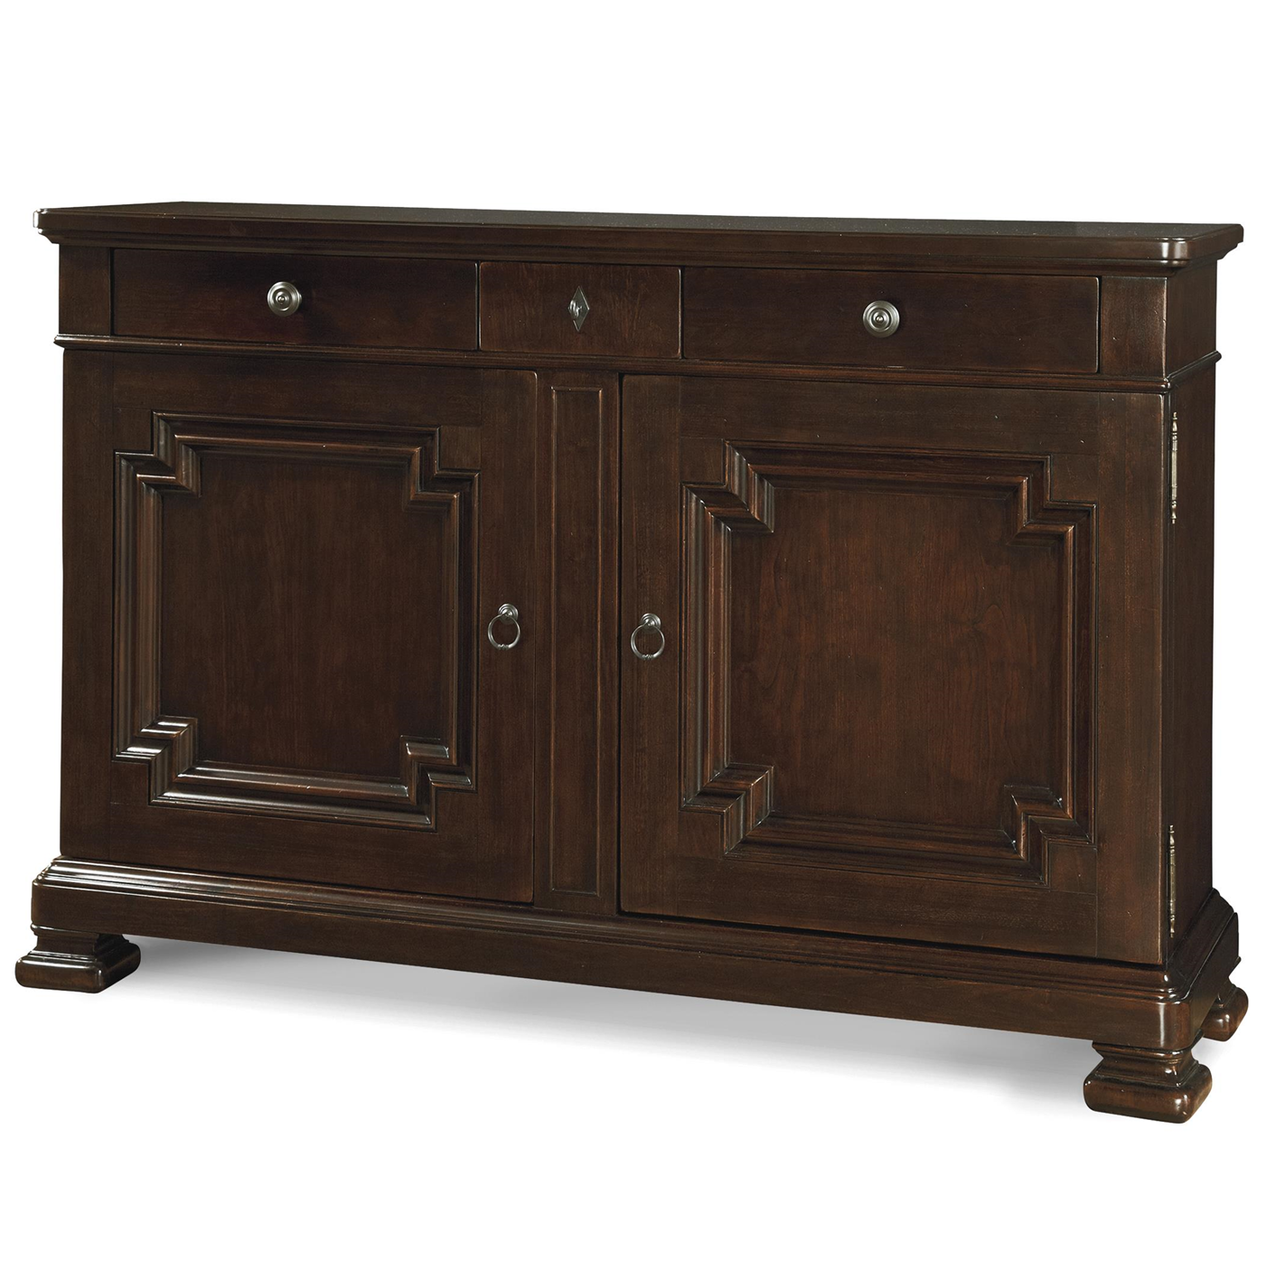 Dining room furniture buffet Breakfast Buffet Zin Home Proximity Cherry Wood Dining Room Credenza Buffet Zin Home